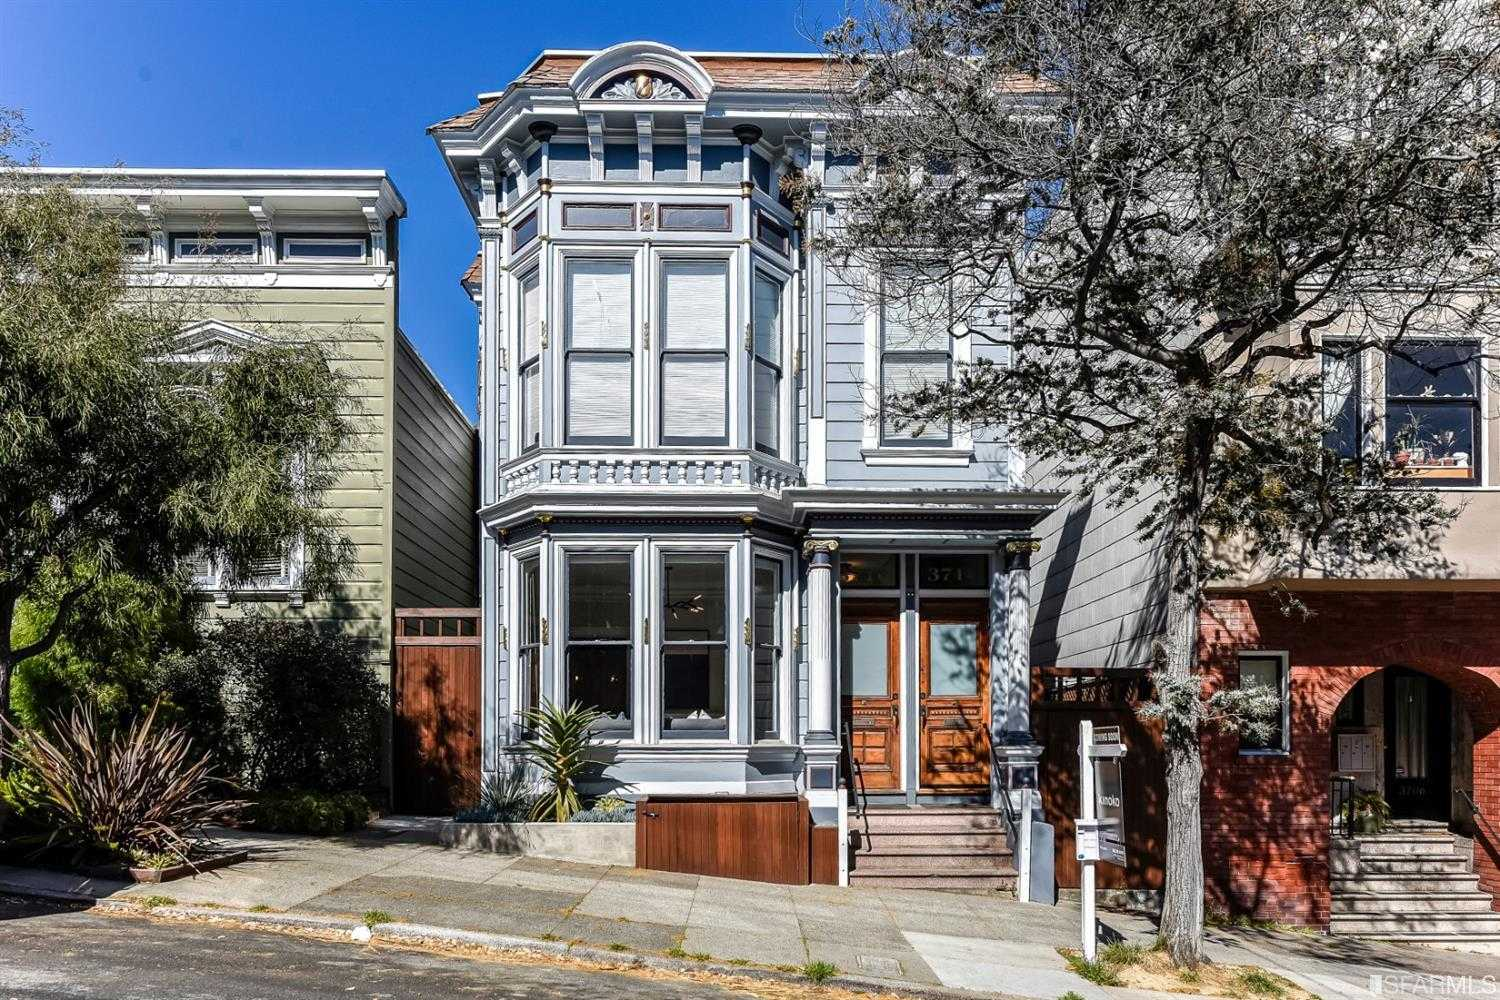 3716 23rd St San Francisco, CA 94114